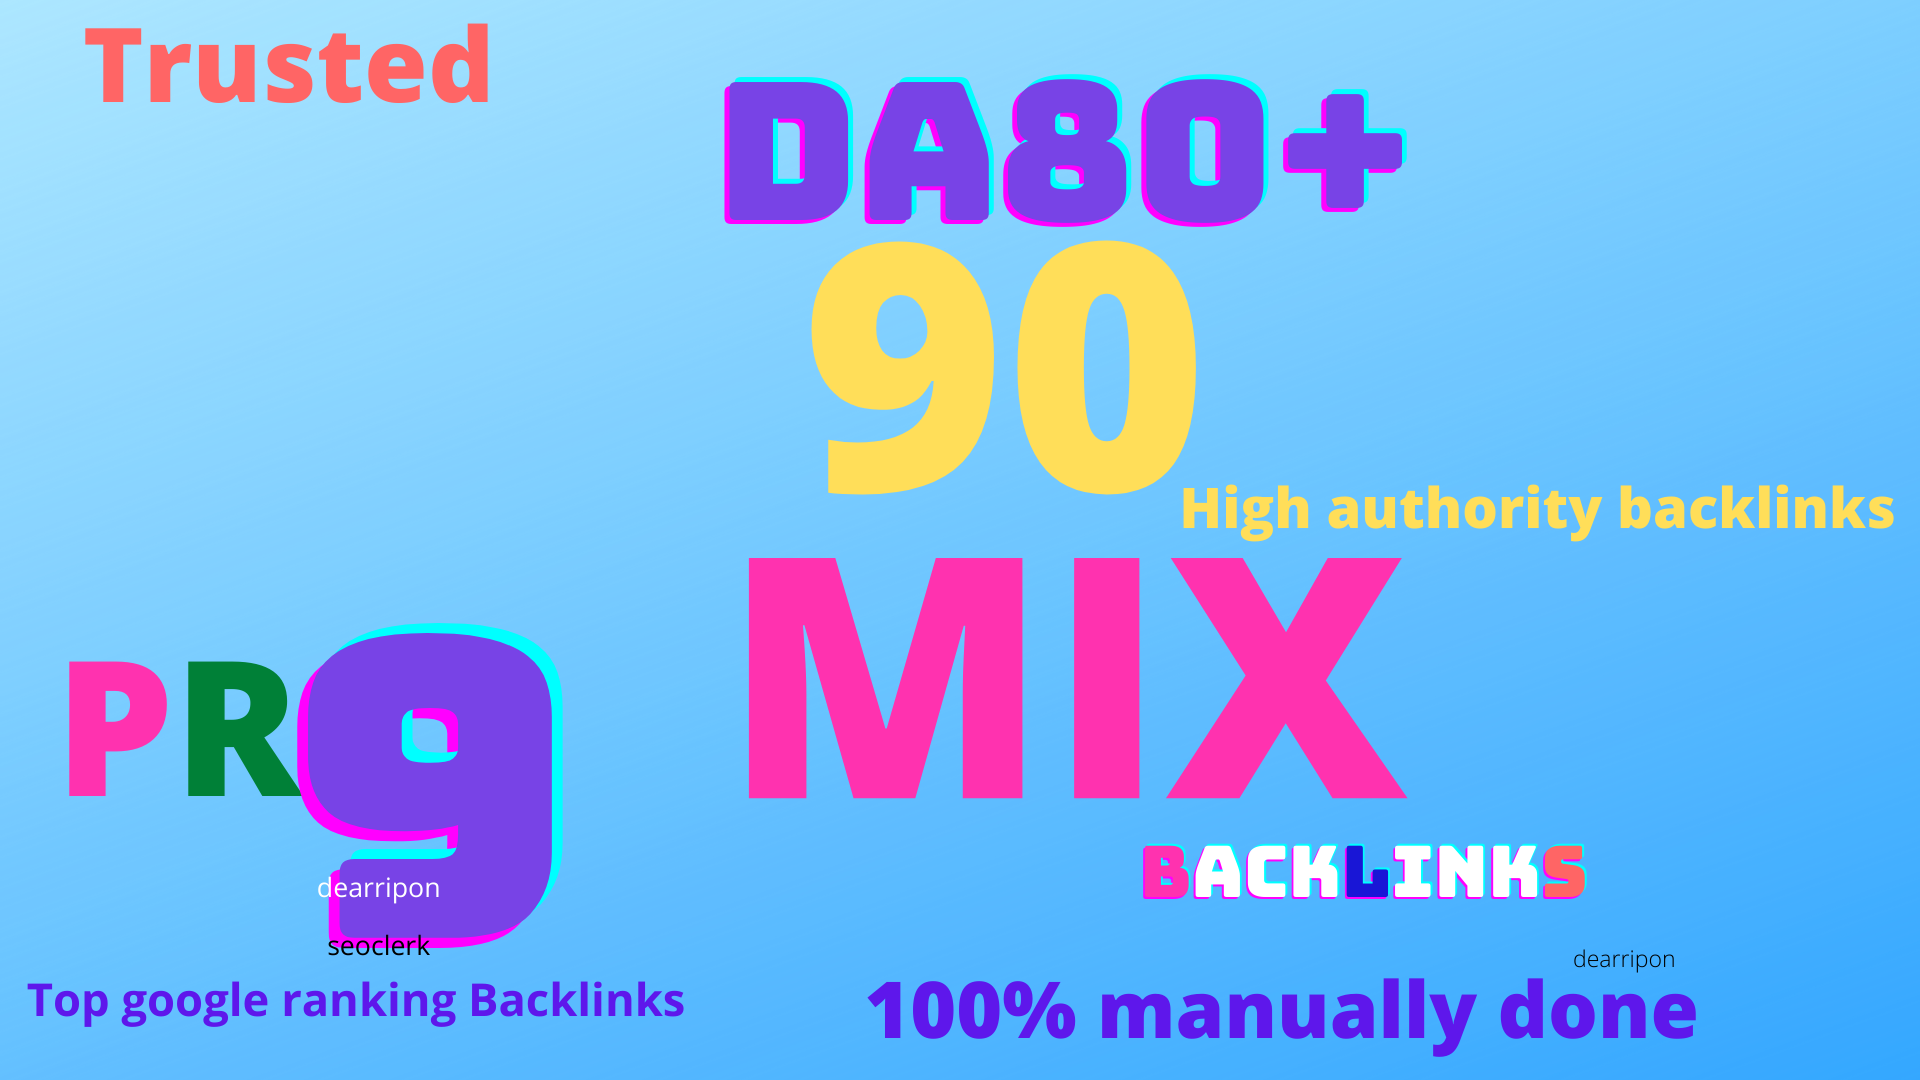 limited time offer-90 Mixed backlinks DA 80+Permanent Natural High quality Do-follow Link building